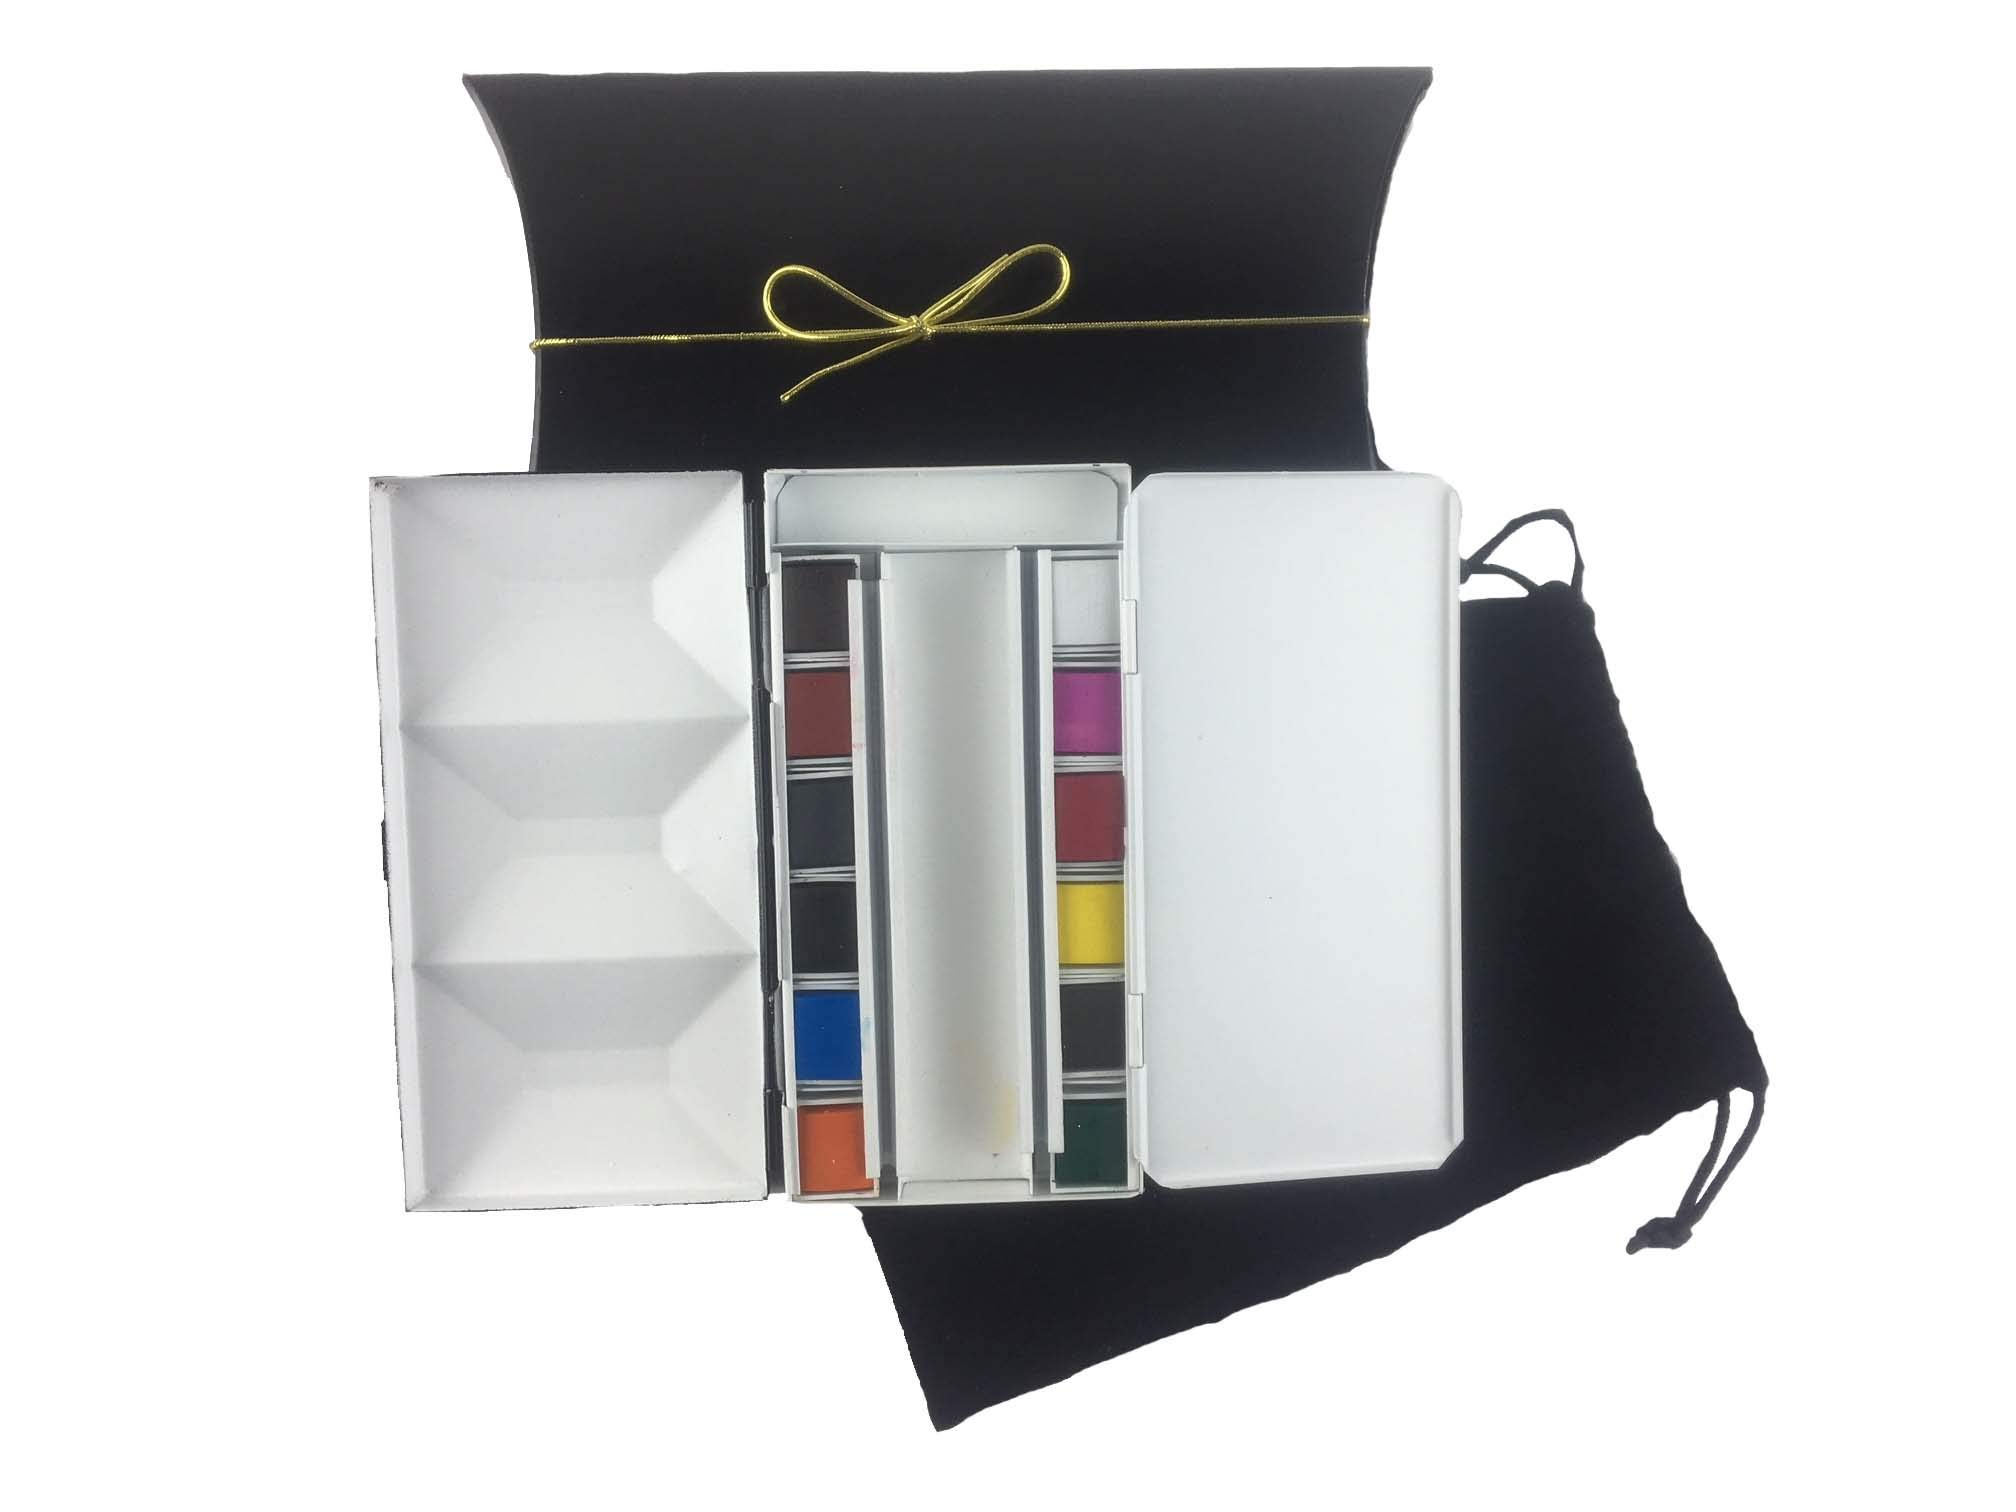 Whiskey Painters Artist Watercolor Art Travel Set of 12 Colors Folding Artist Metal Palette Box Complete Travel Set Hand Made in Italy